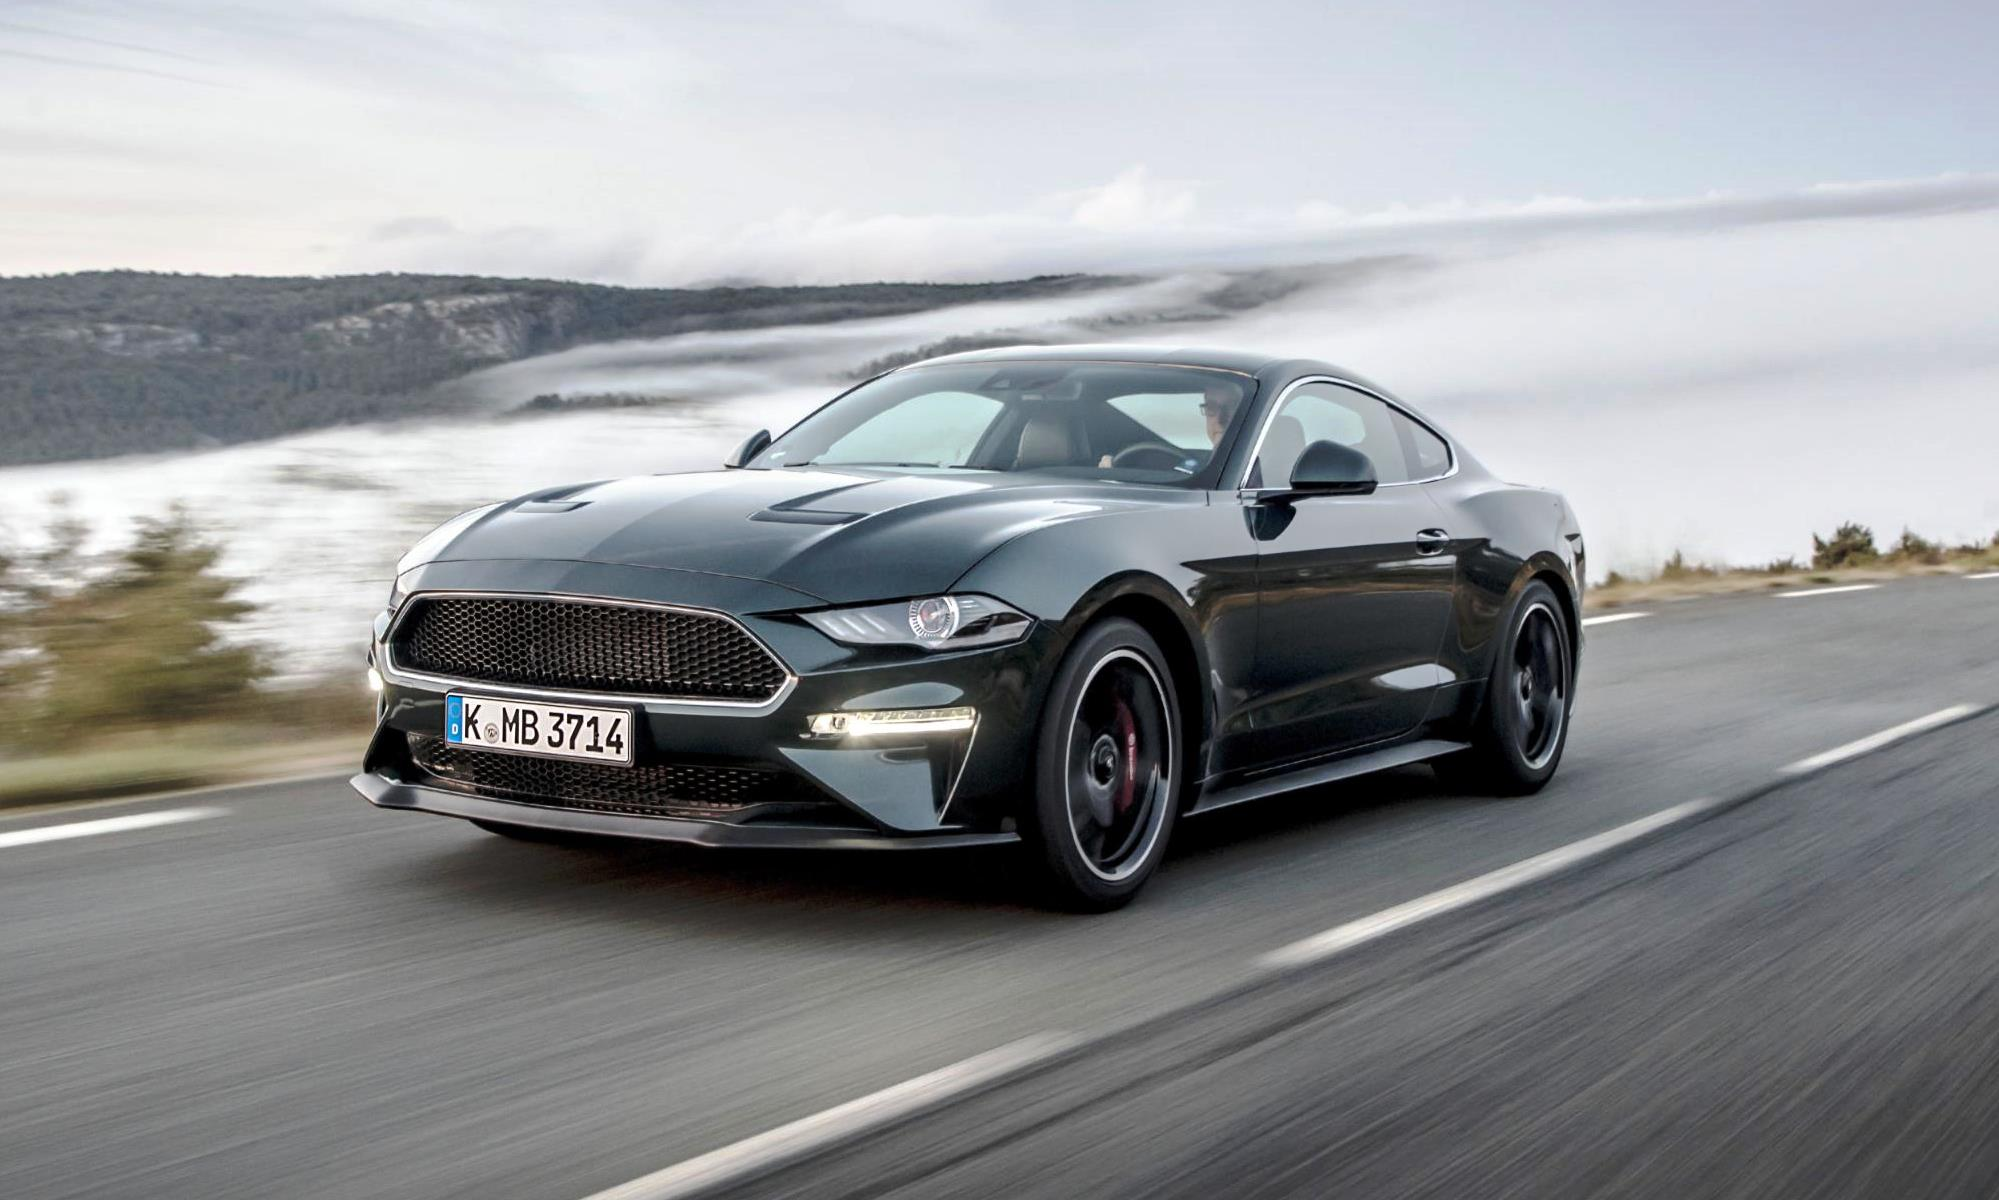 Facelifted Ford Mustang Bullitt side